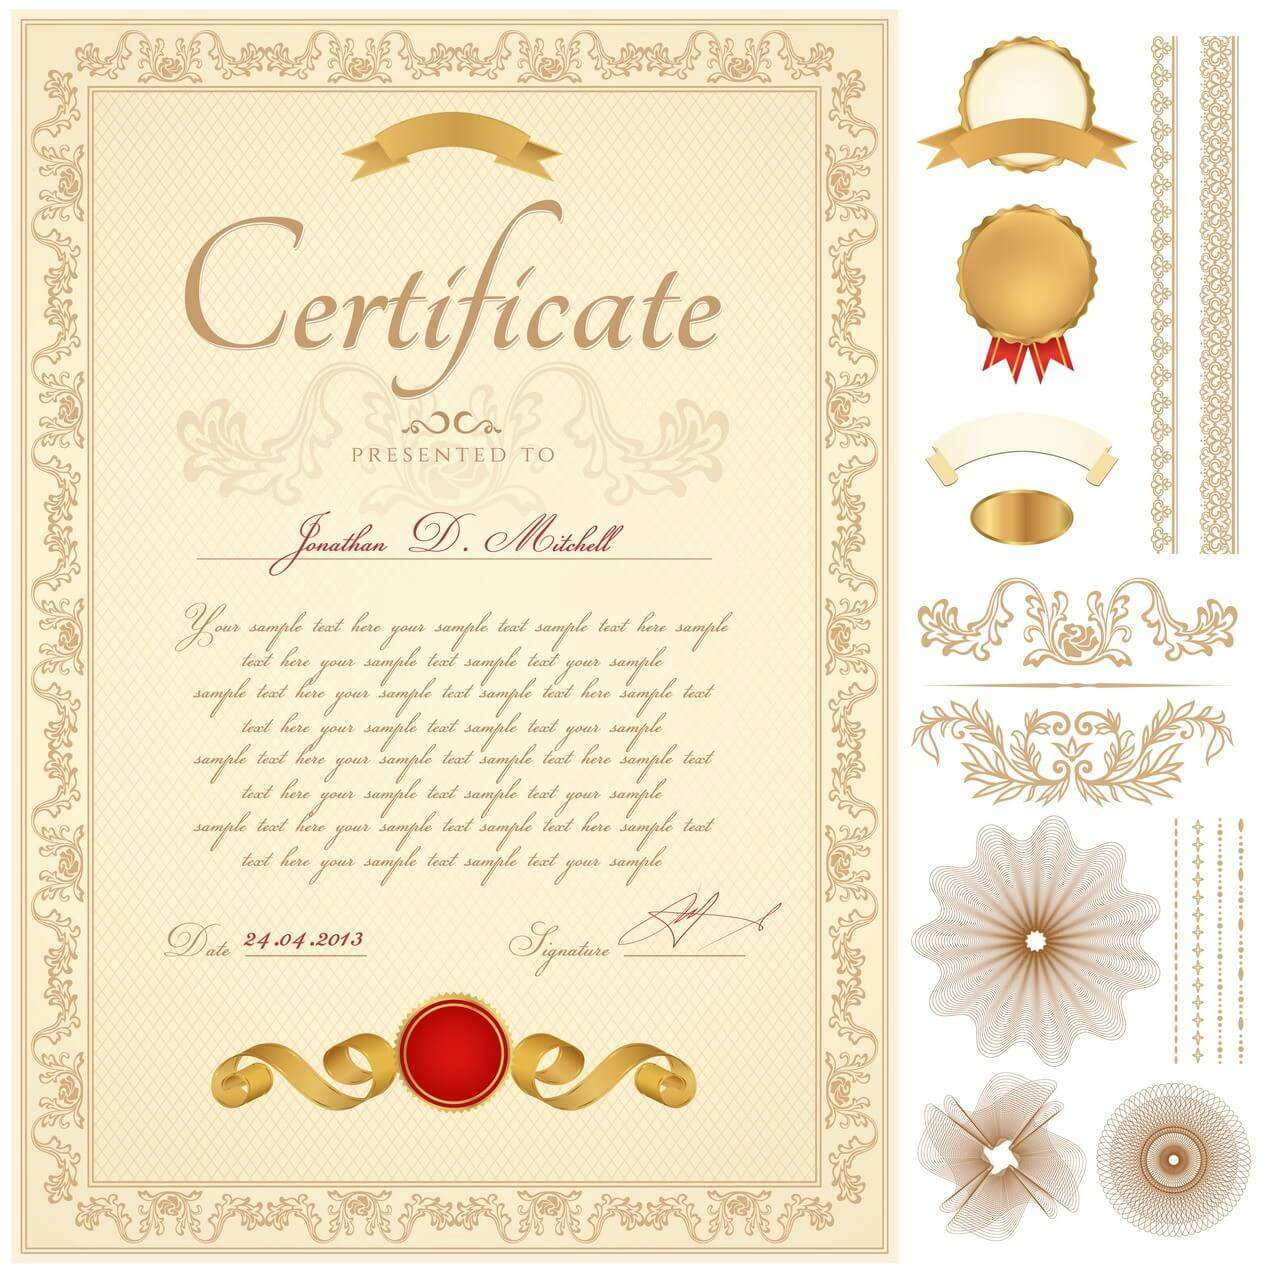 Certificate template 03 vector eps free download logo icons clipart certificate02 xflitez Gallery